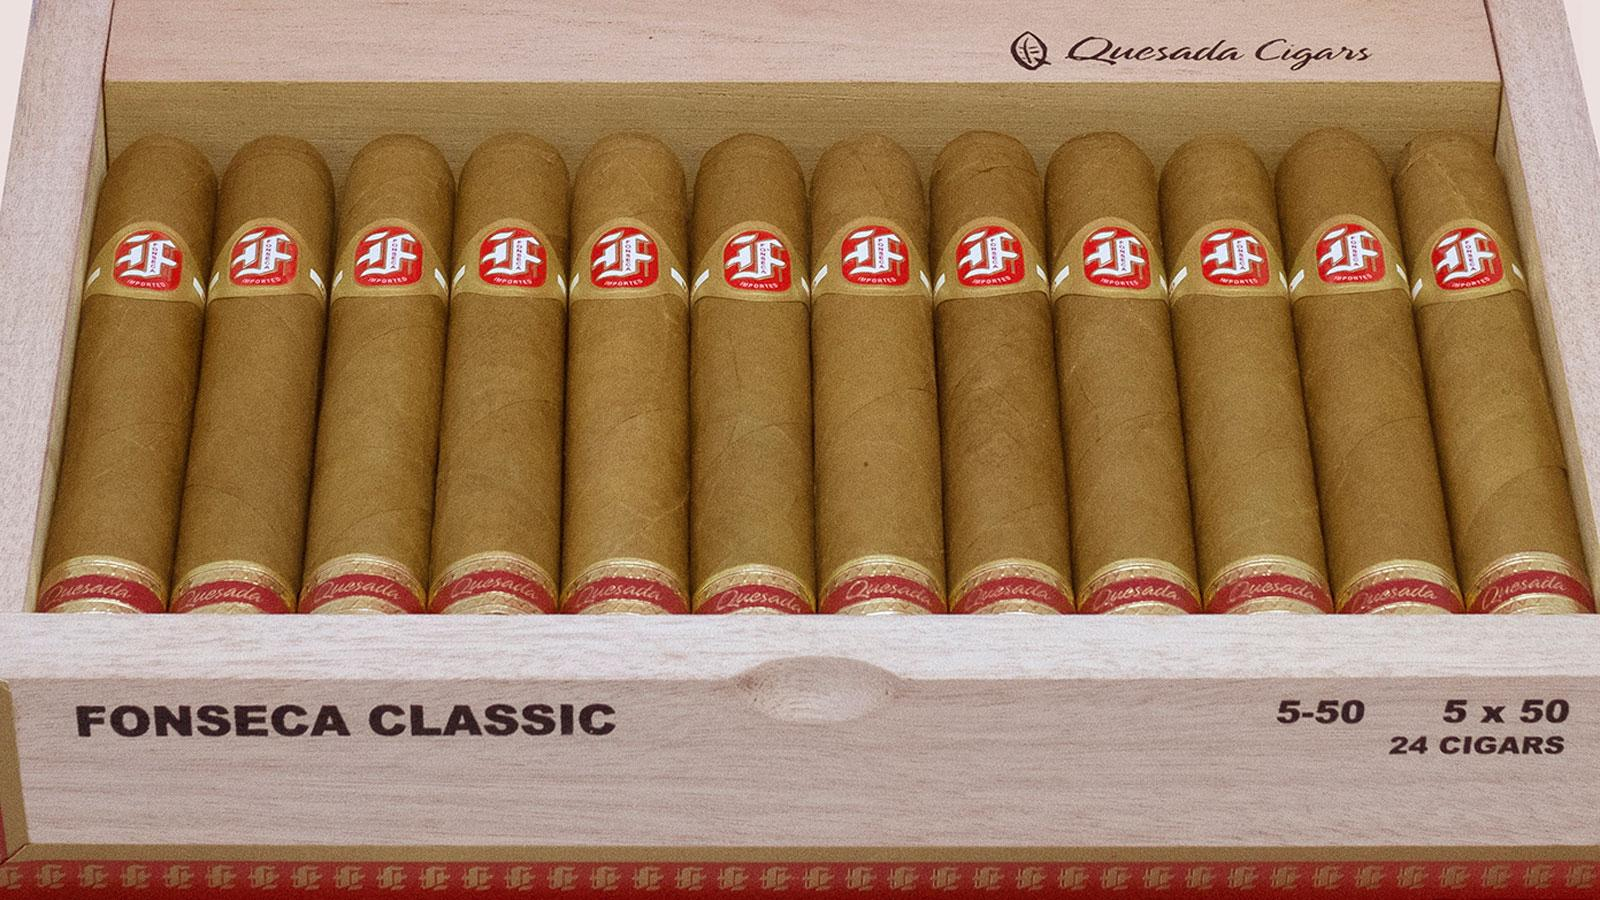 Fonseca Classic Gets a New Look